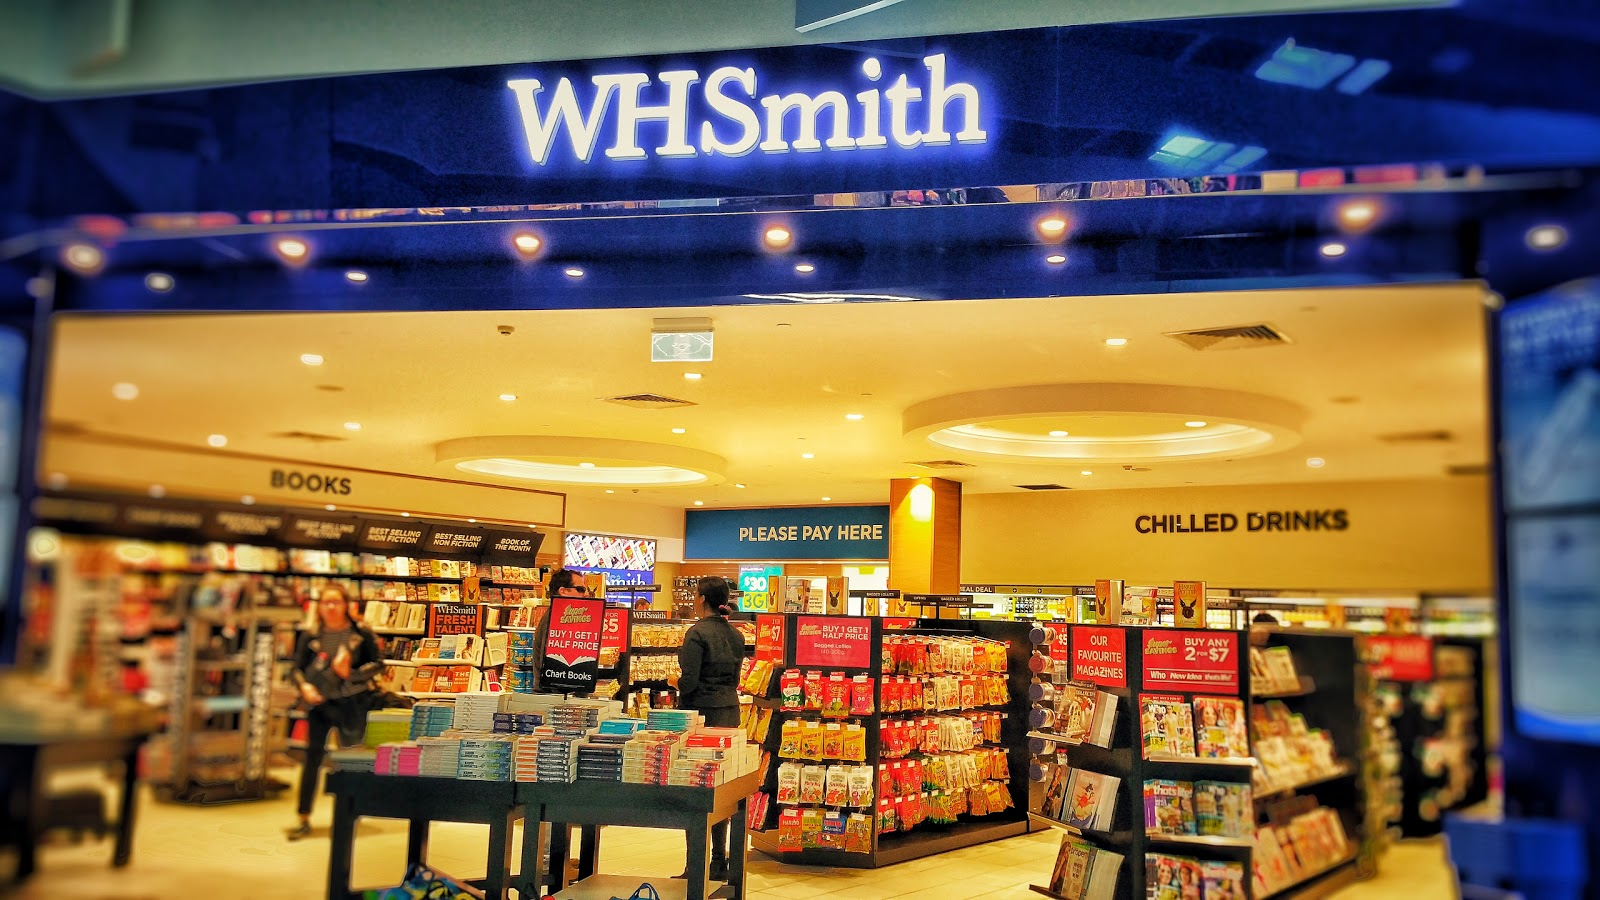 Wh smith me melbourne vic merchant details website wh smith australia melbourne airport airside ctn solutioingenieria Choice Image